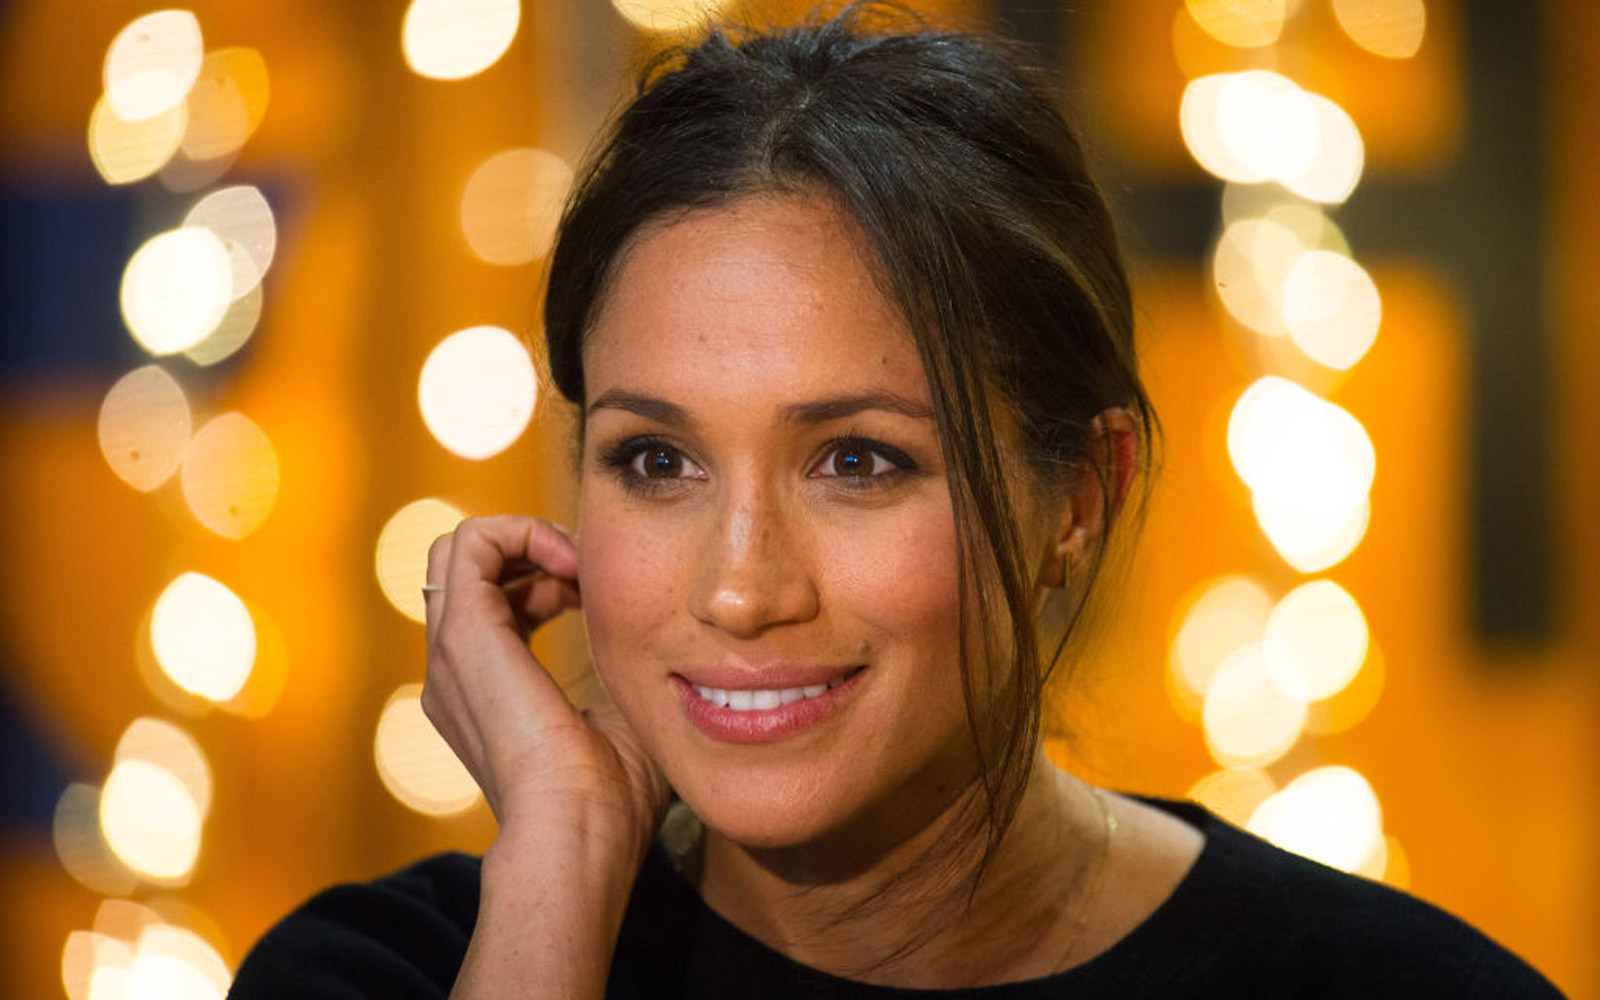 The Best of Meghan Markle's Deleted Instagram Photos